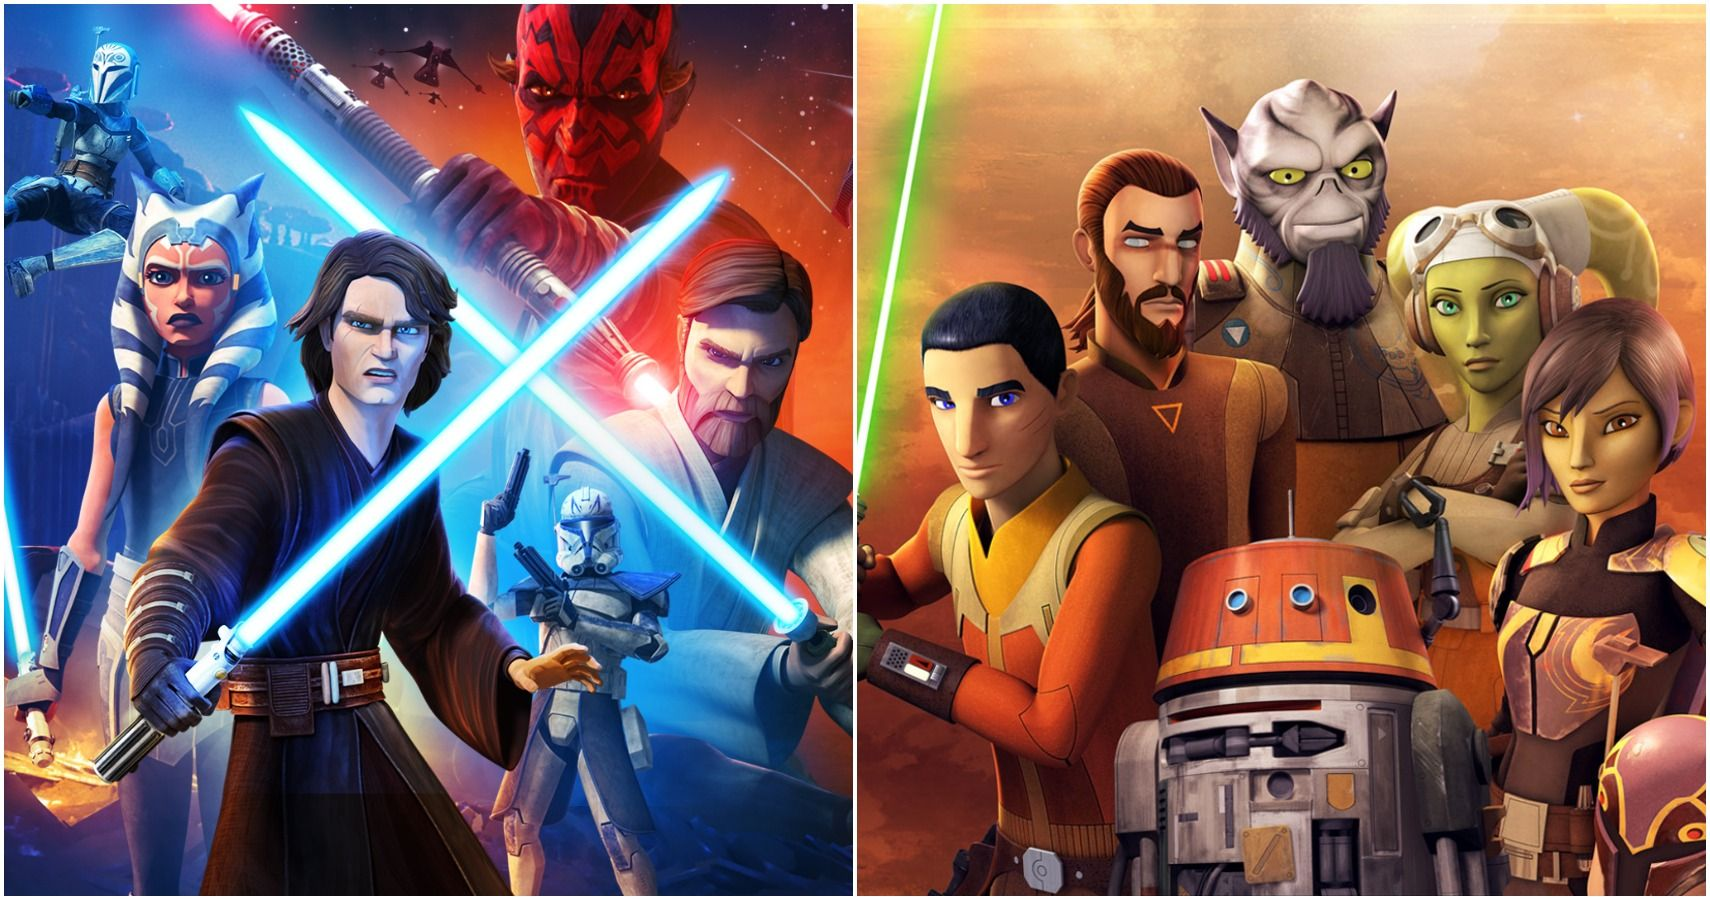 10 Storylines Between Clone Wars & Rebels That Have Yet To Be Told